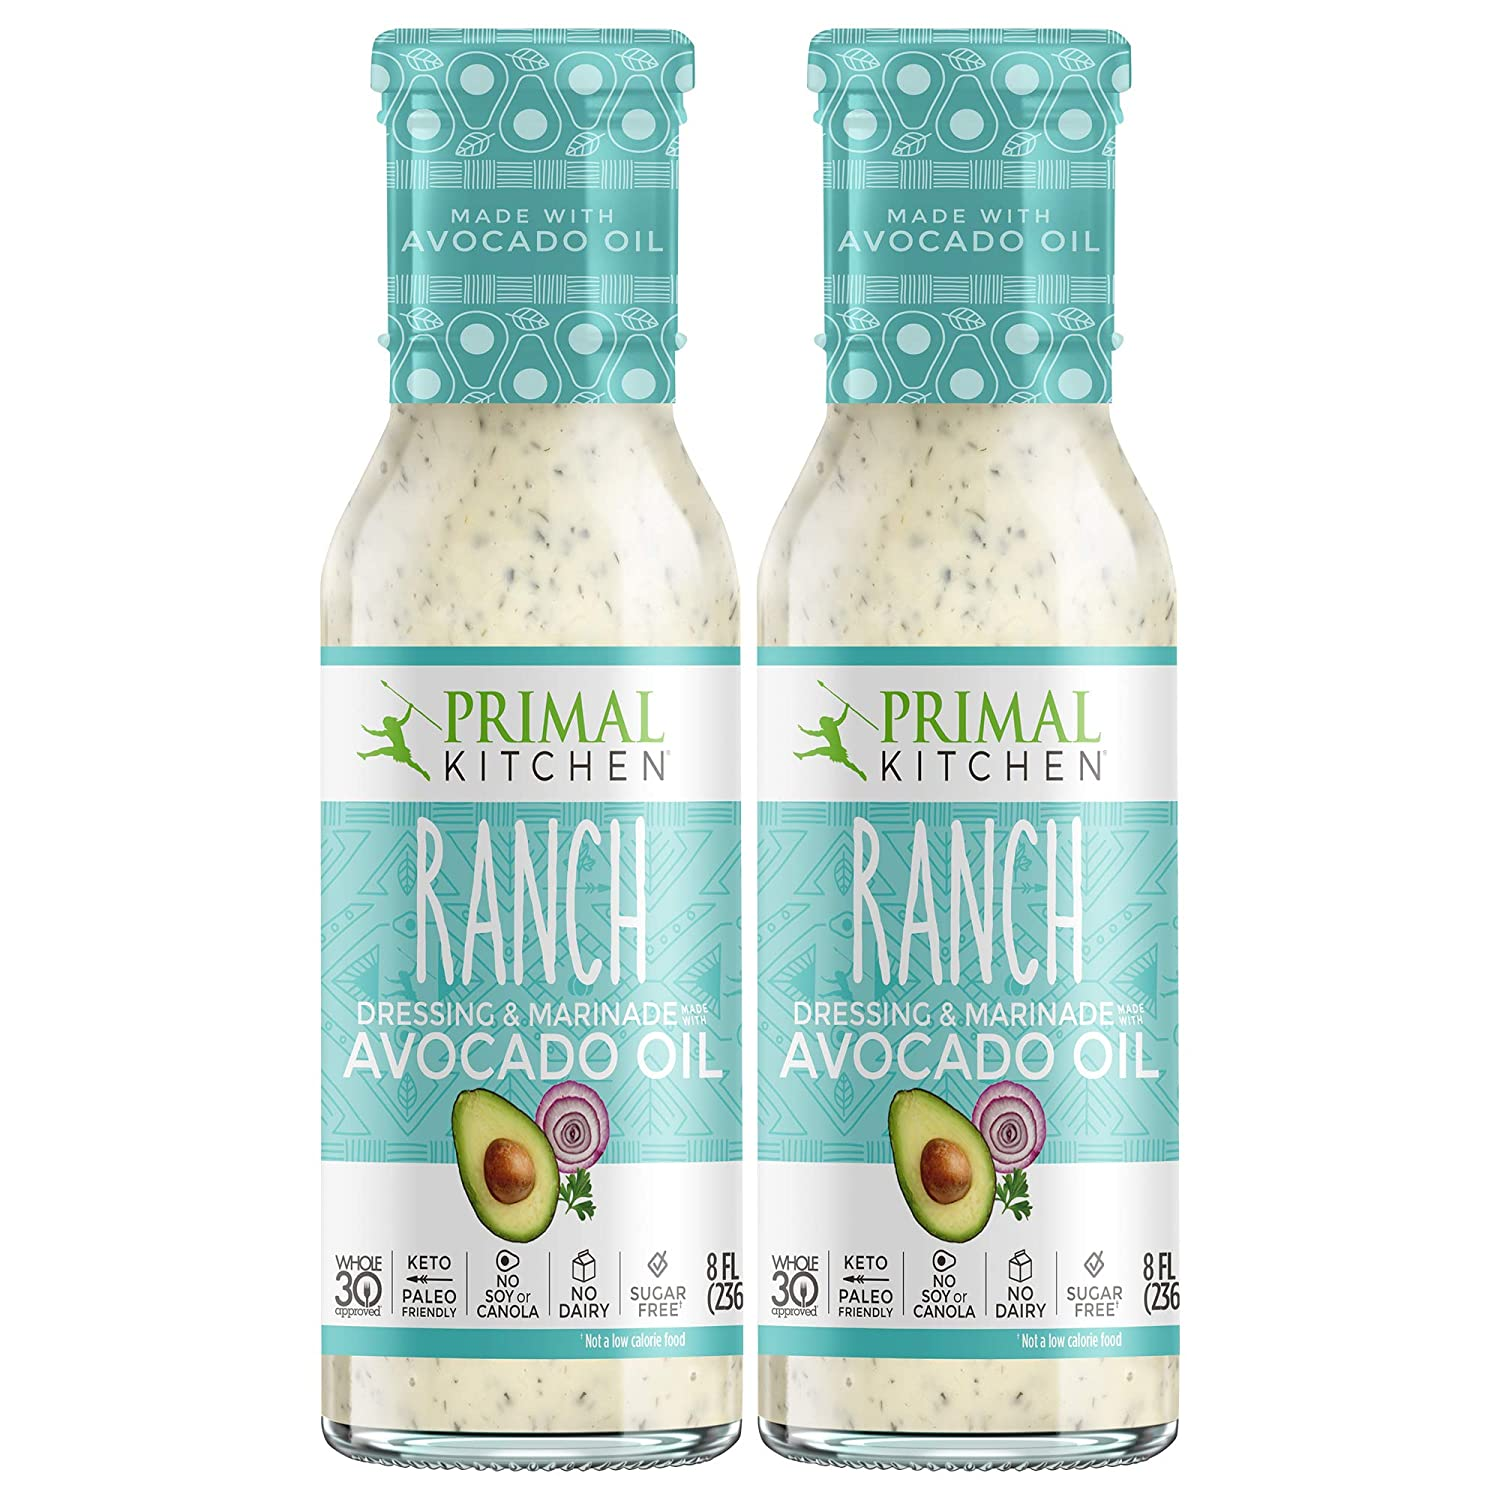 Primal Kitchen Ranch >> Primal Kitchen Ranch Avocado Oil Based Dressing And Marinade Whole30 And Paleo Approved 2 Count